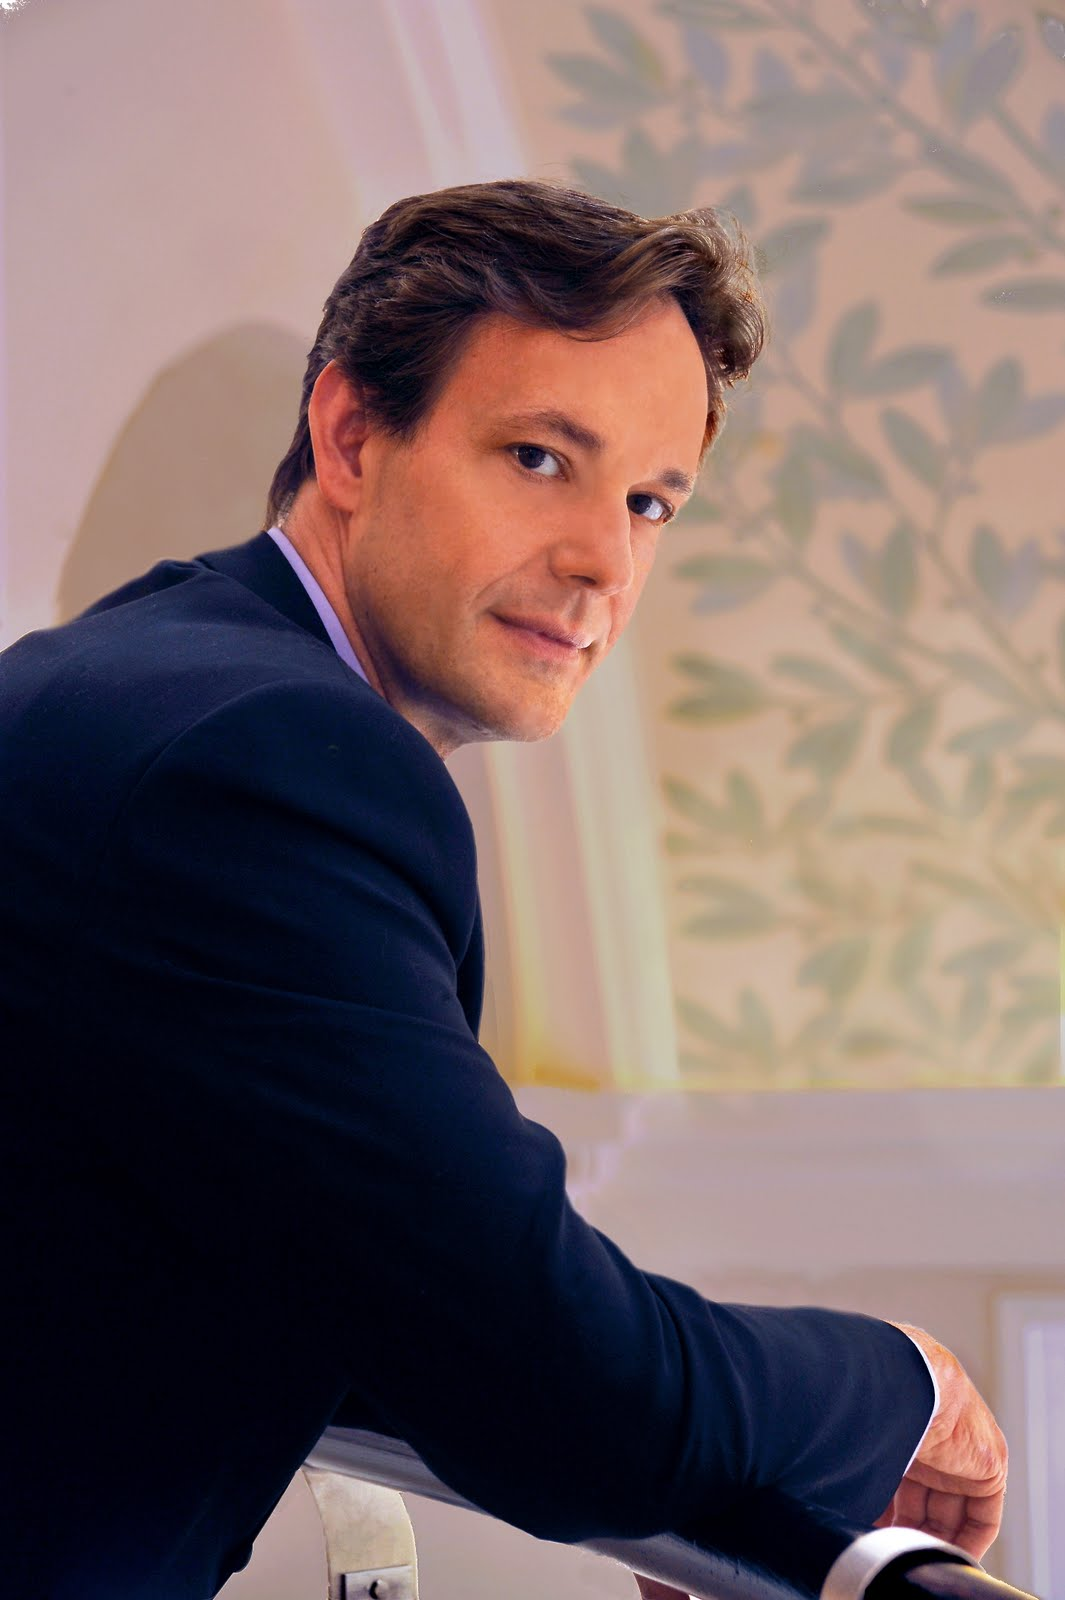 Jake Heggie, composer of many songs as well as operas Dead Man Walking, Moby Dick, Three Decembers, and more.